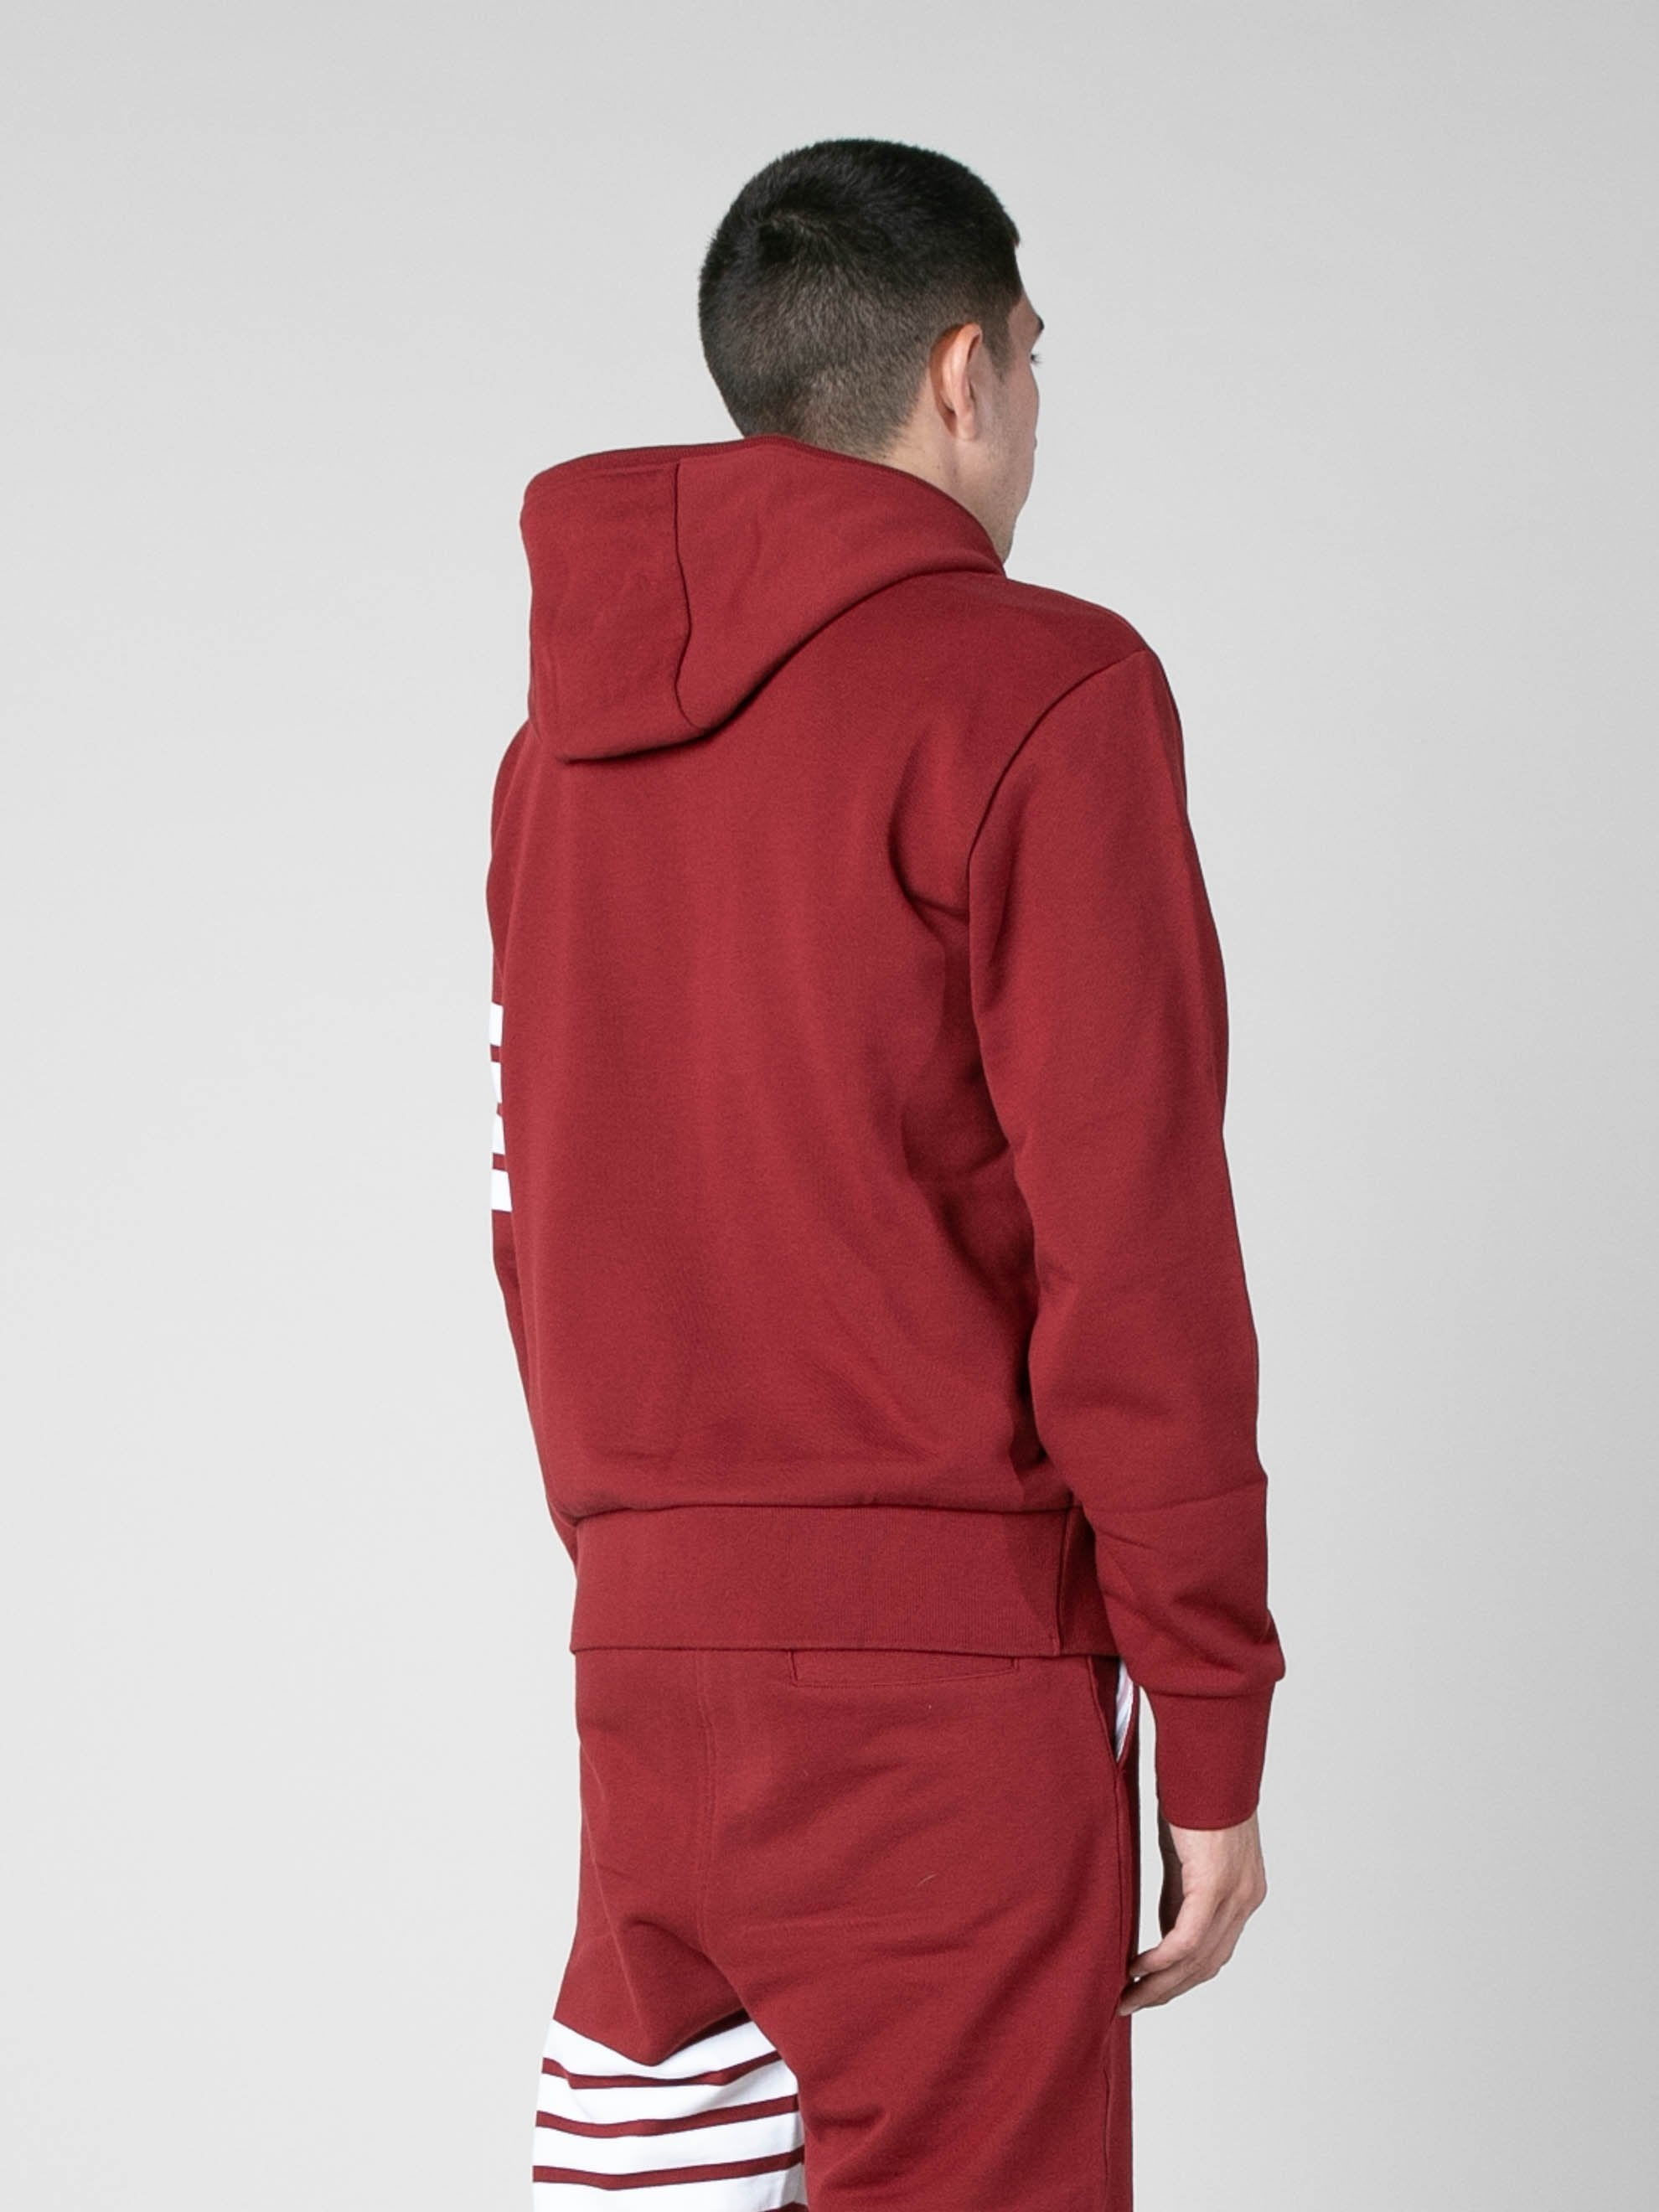 Med Red Hoodie Pullover In Classic Loop Back w/ Engineered 4 Bar 5